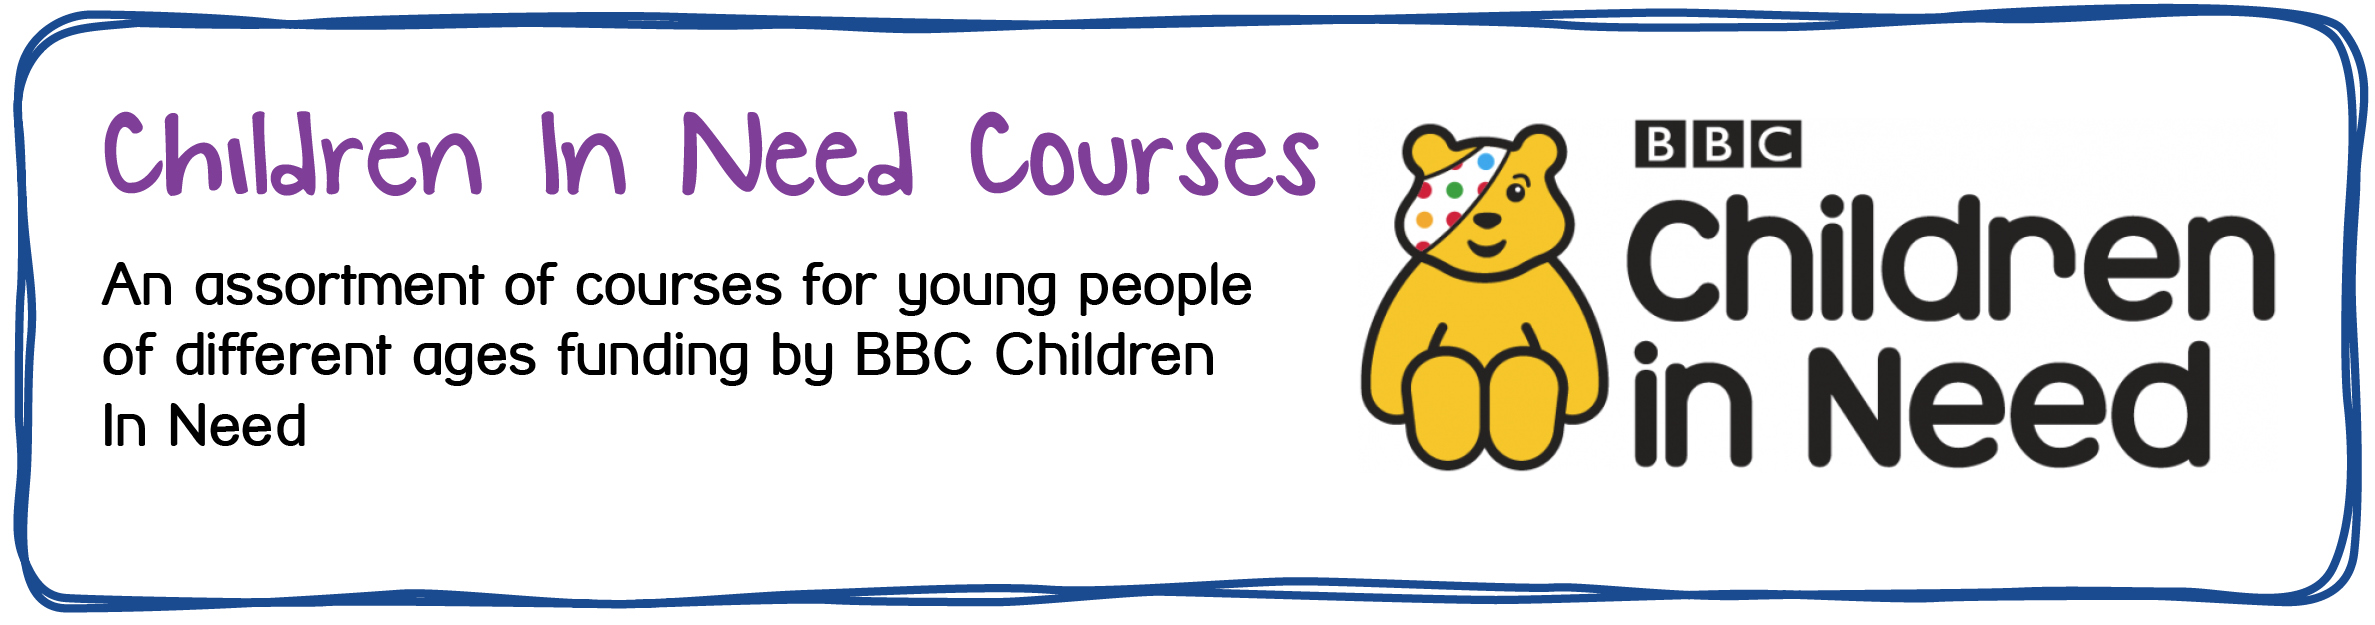 Youth Services - Children In Need Programme - Learn more about the Youth Services MMK Mind deliver, funded by Children In Need.